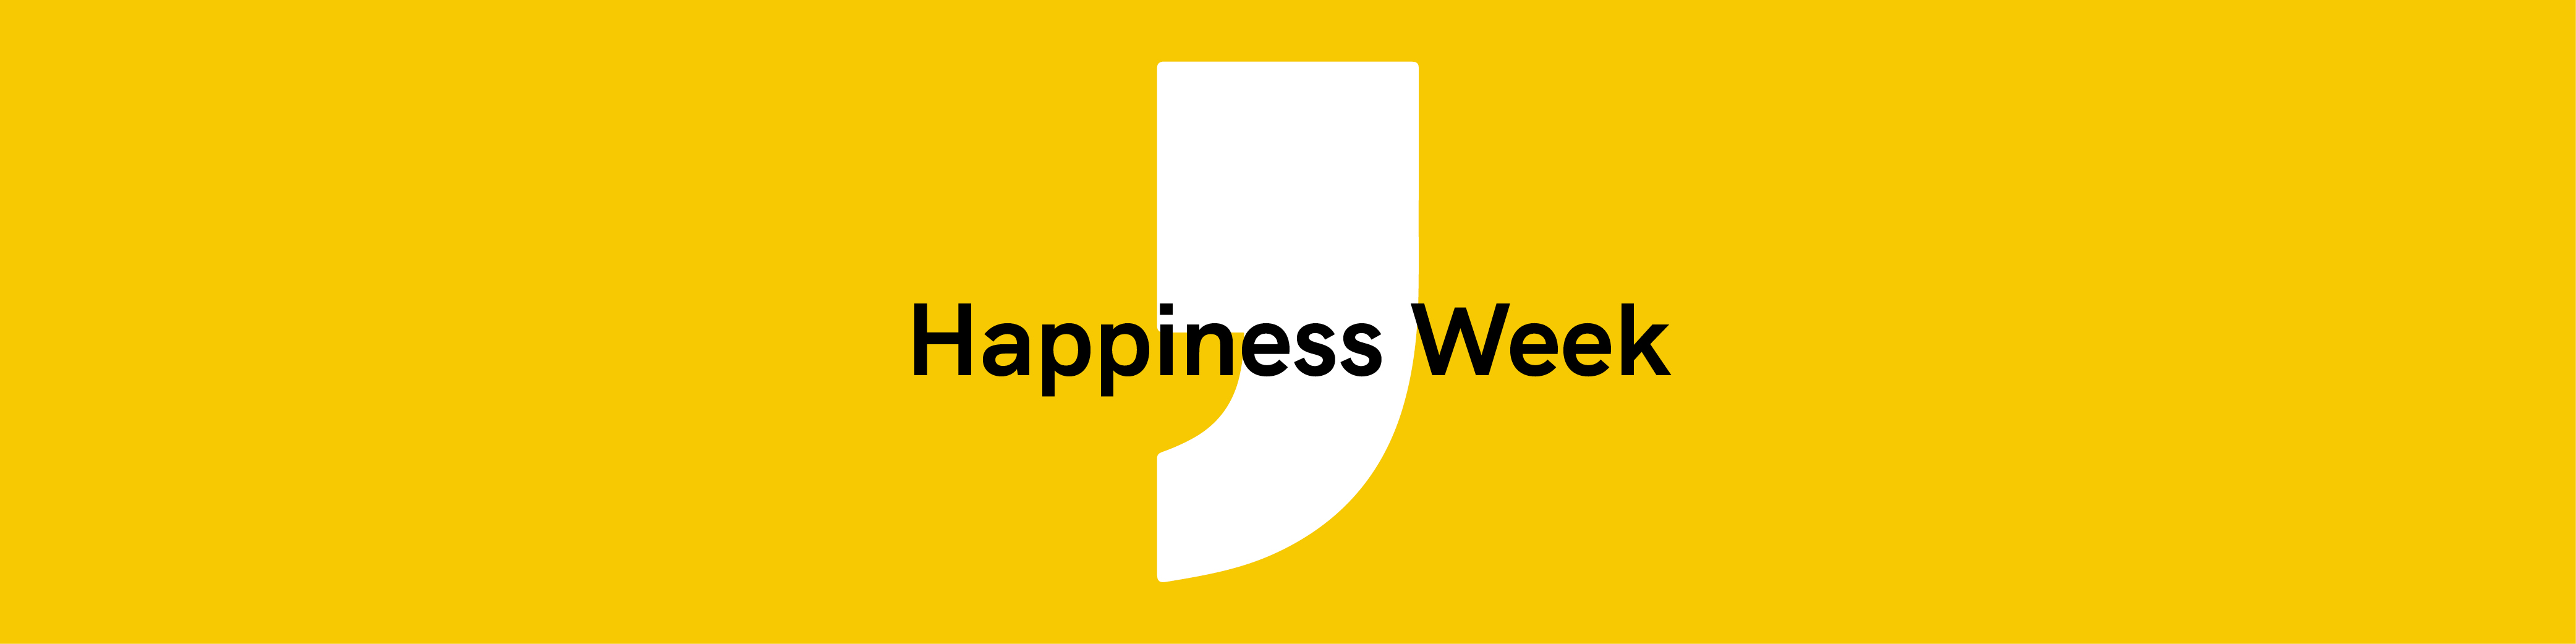 Happiness Week